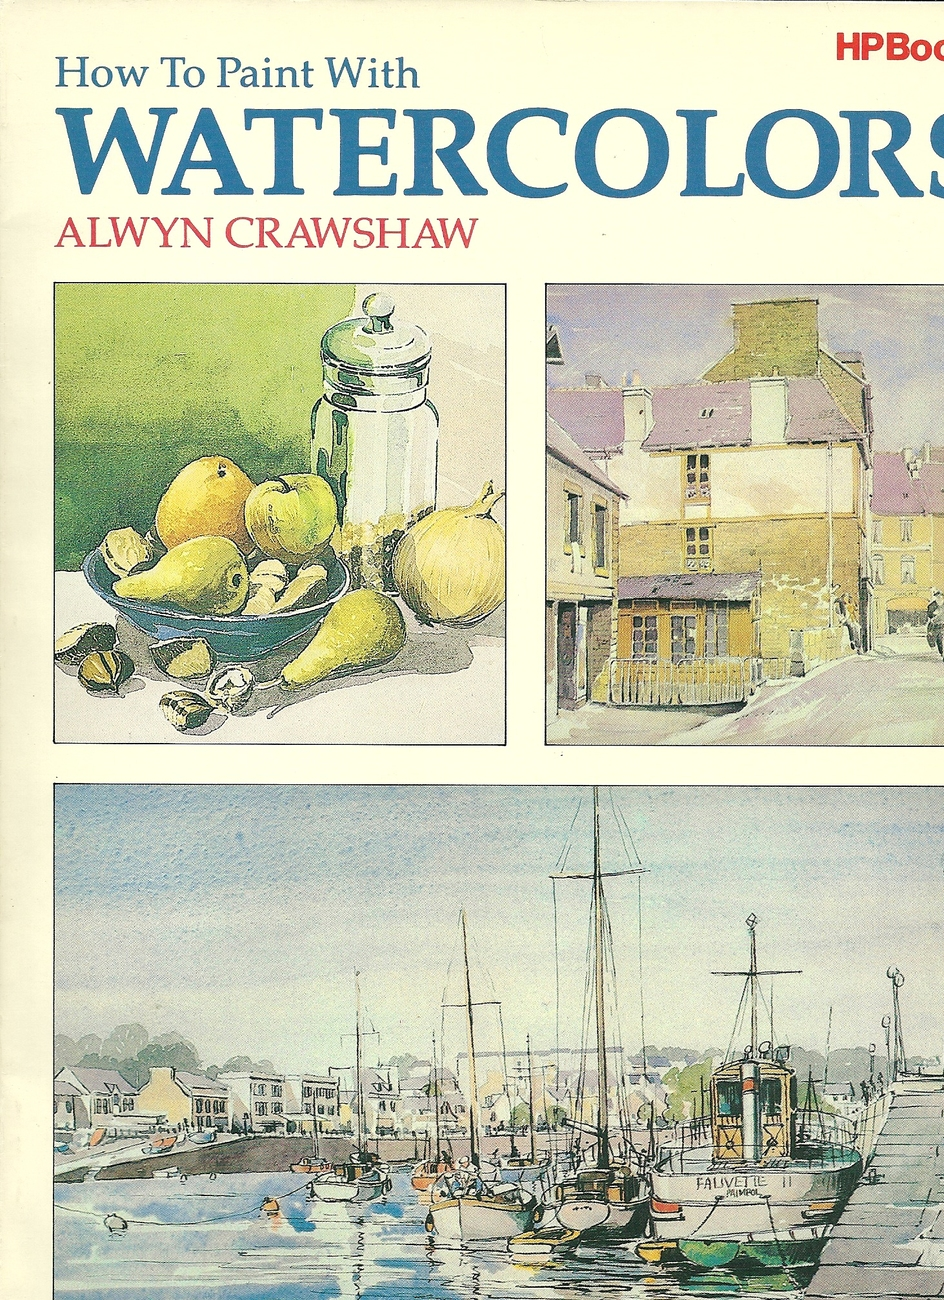 1982 How To Paint With Watercolors, Alwyn Crawshaw BOOK